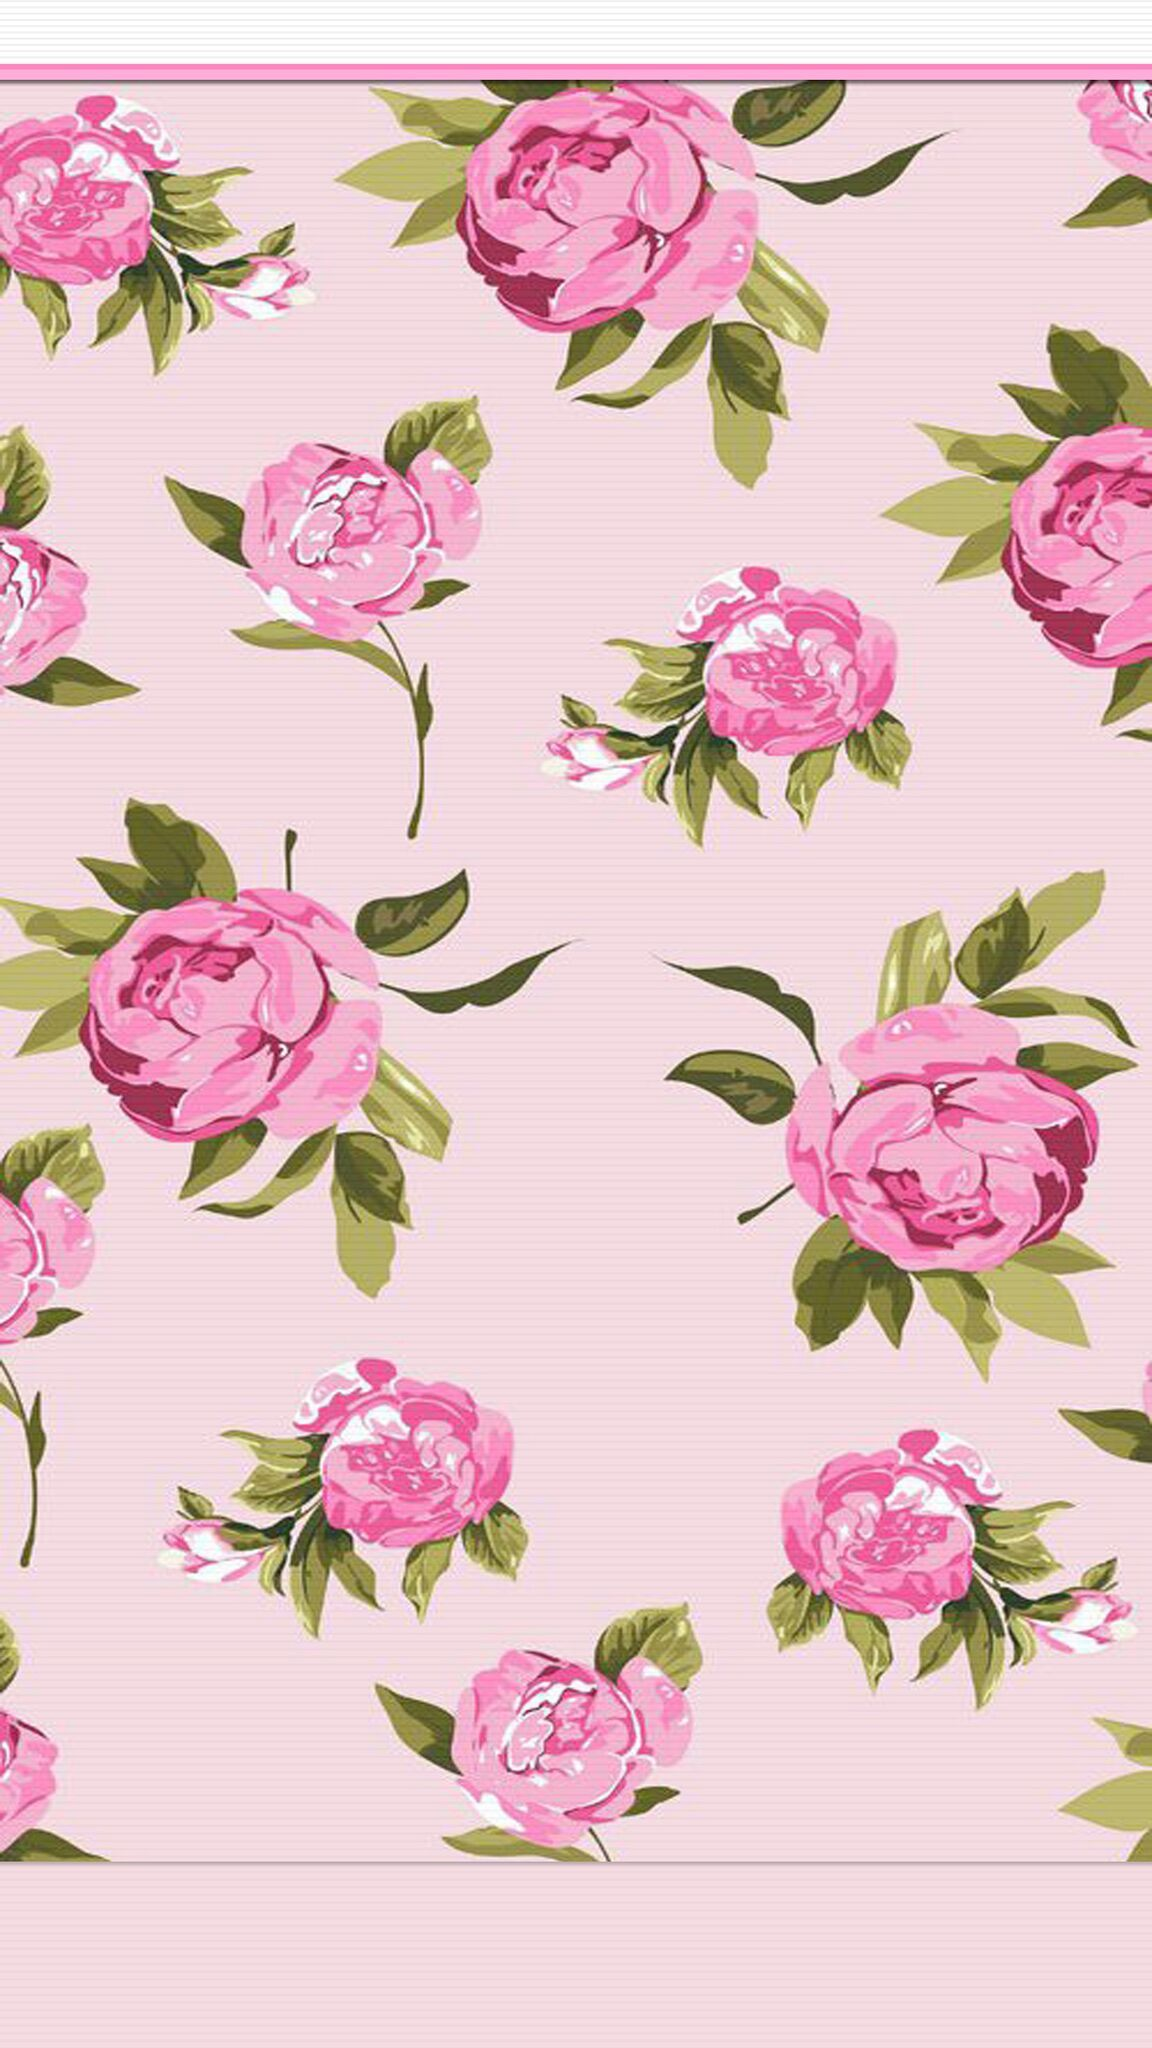 Shared With Dropbox Flower Background Iphone Iphone Wallpaper